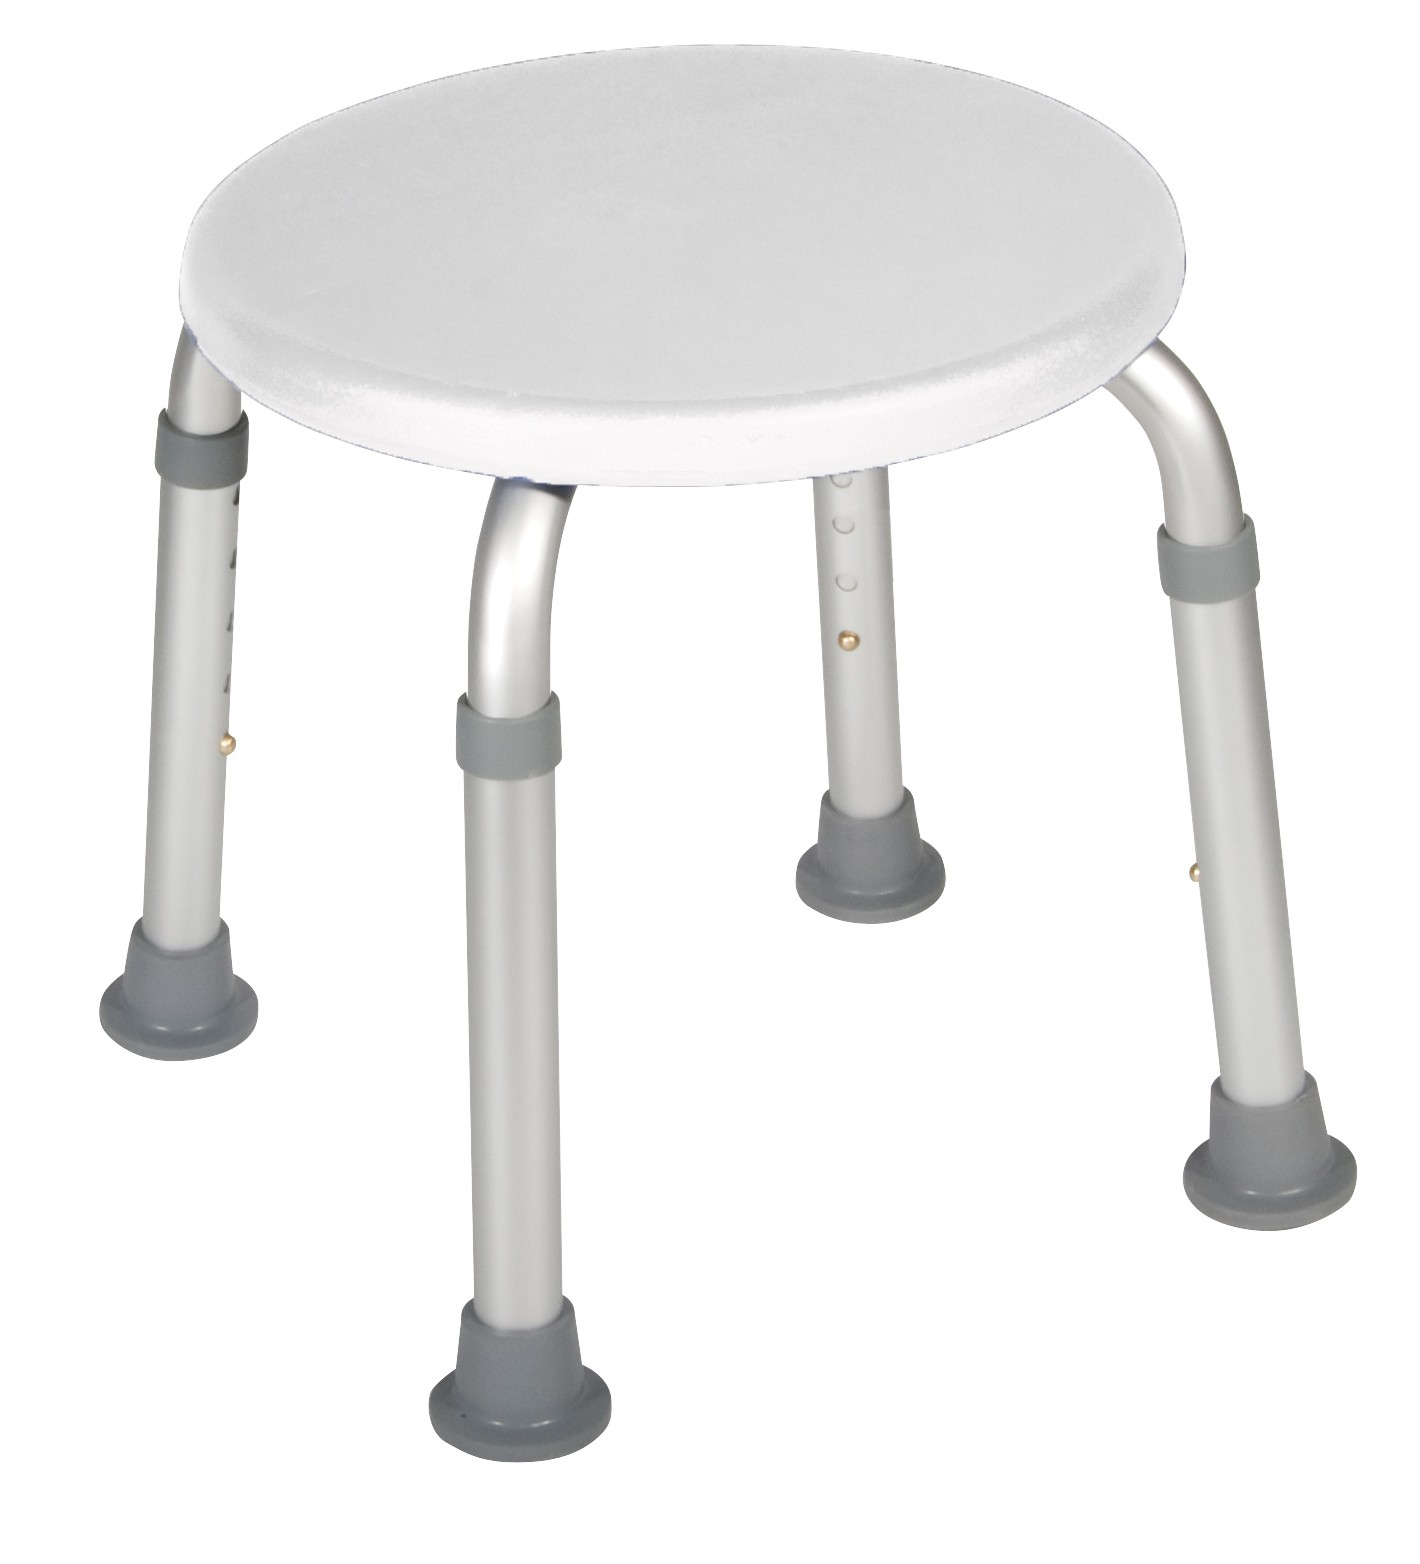 adjustable_height_bath_stool.jpg